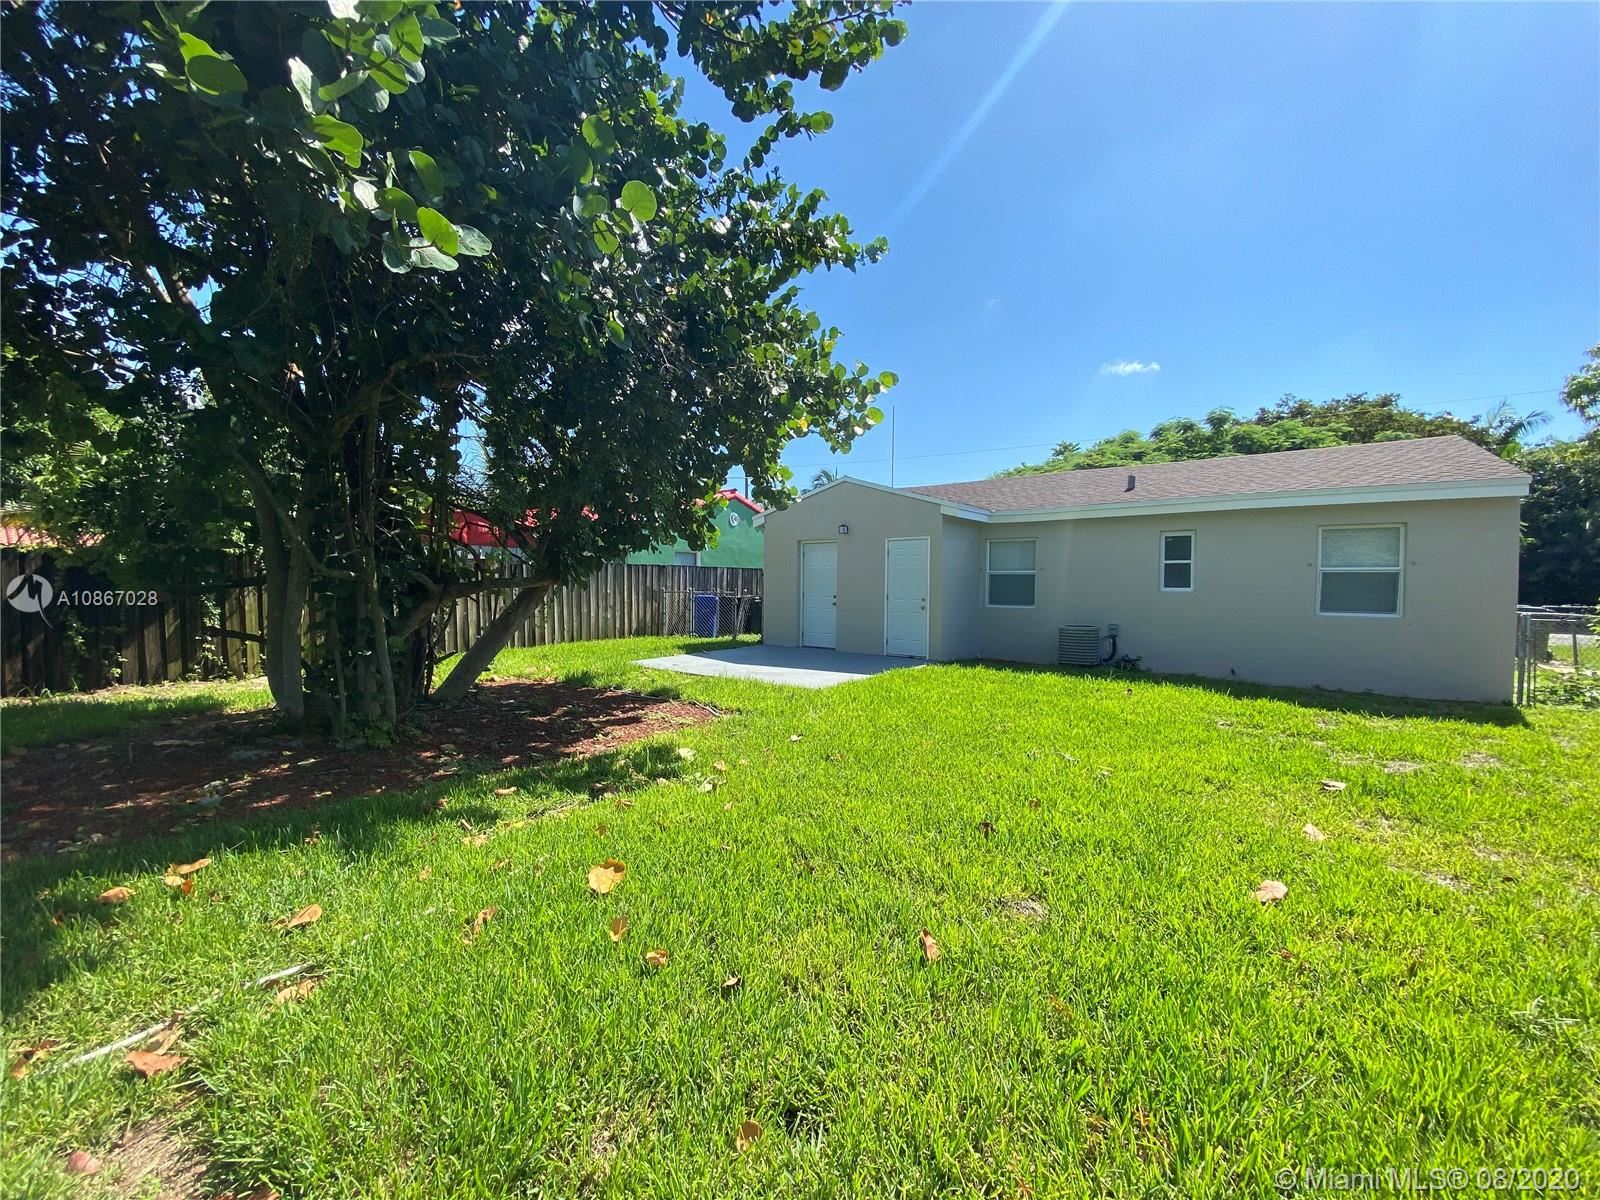 1405 NW 1st Ave, Fort Lauderdale, FL 33311 - #: A10867028